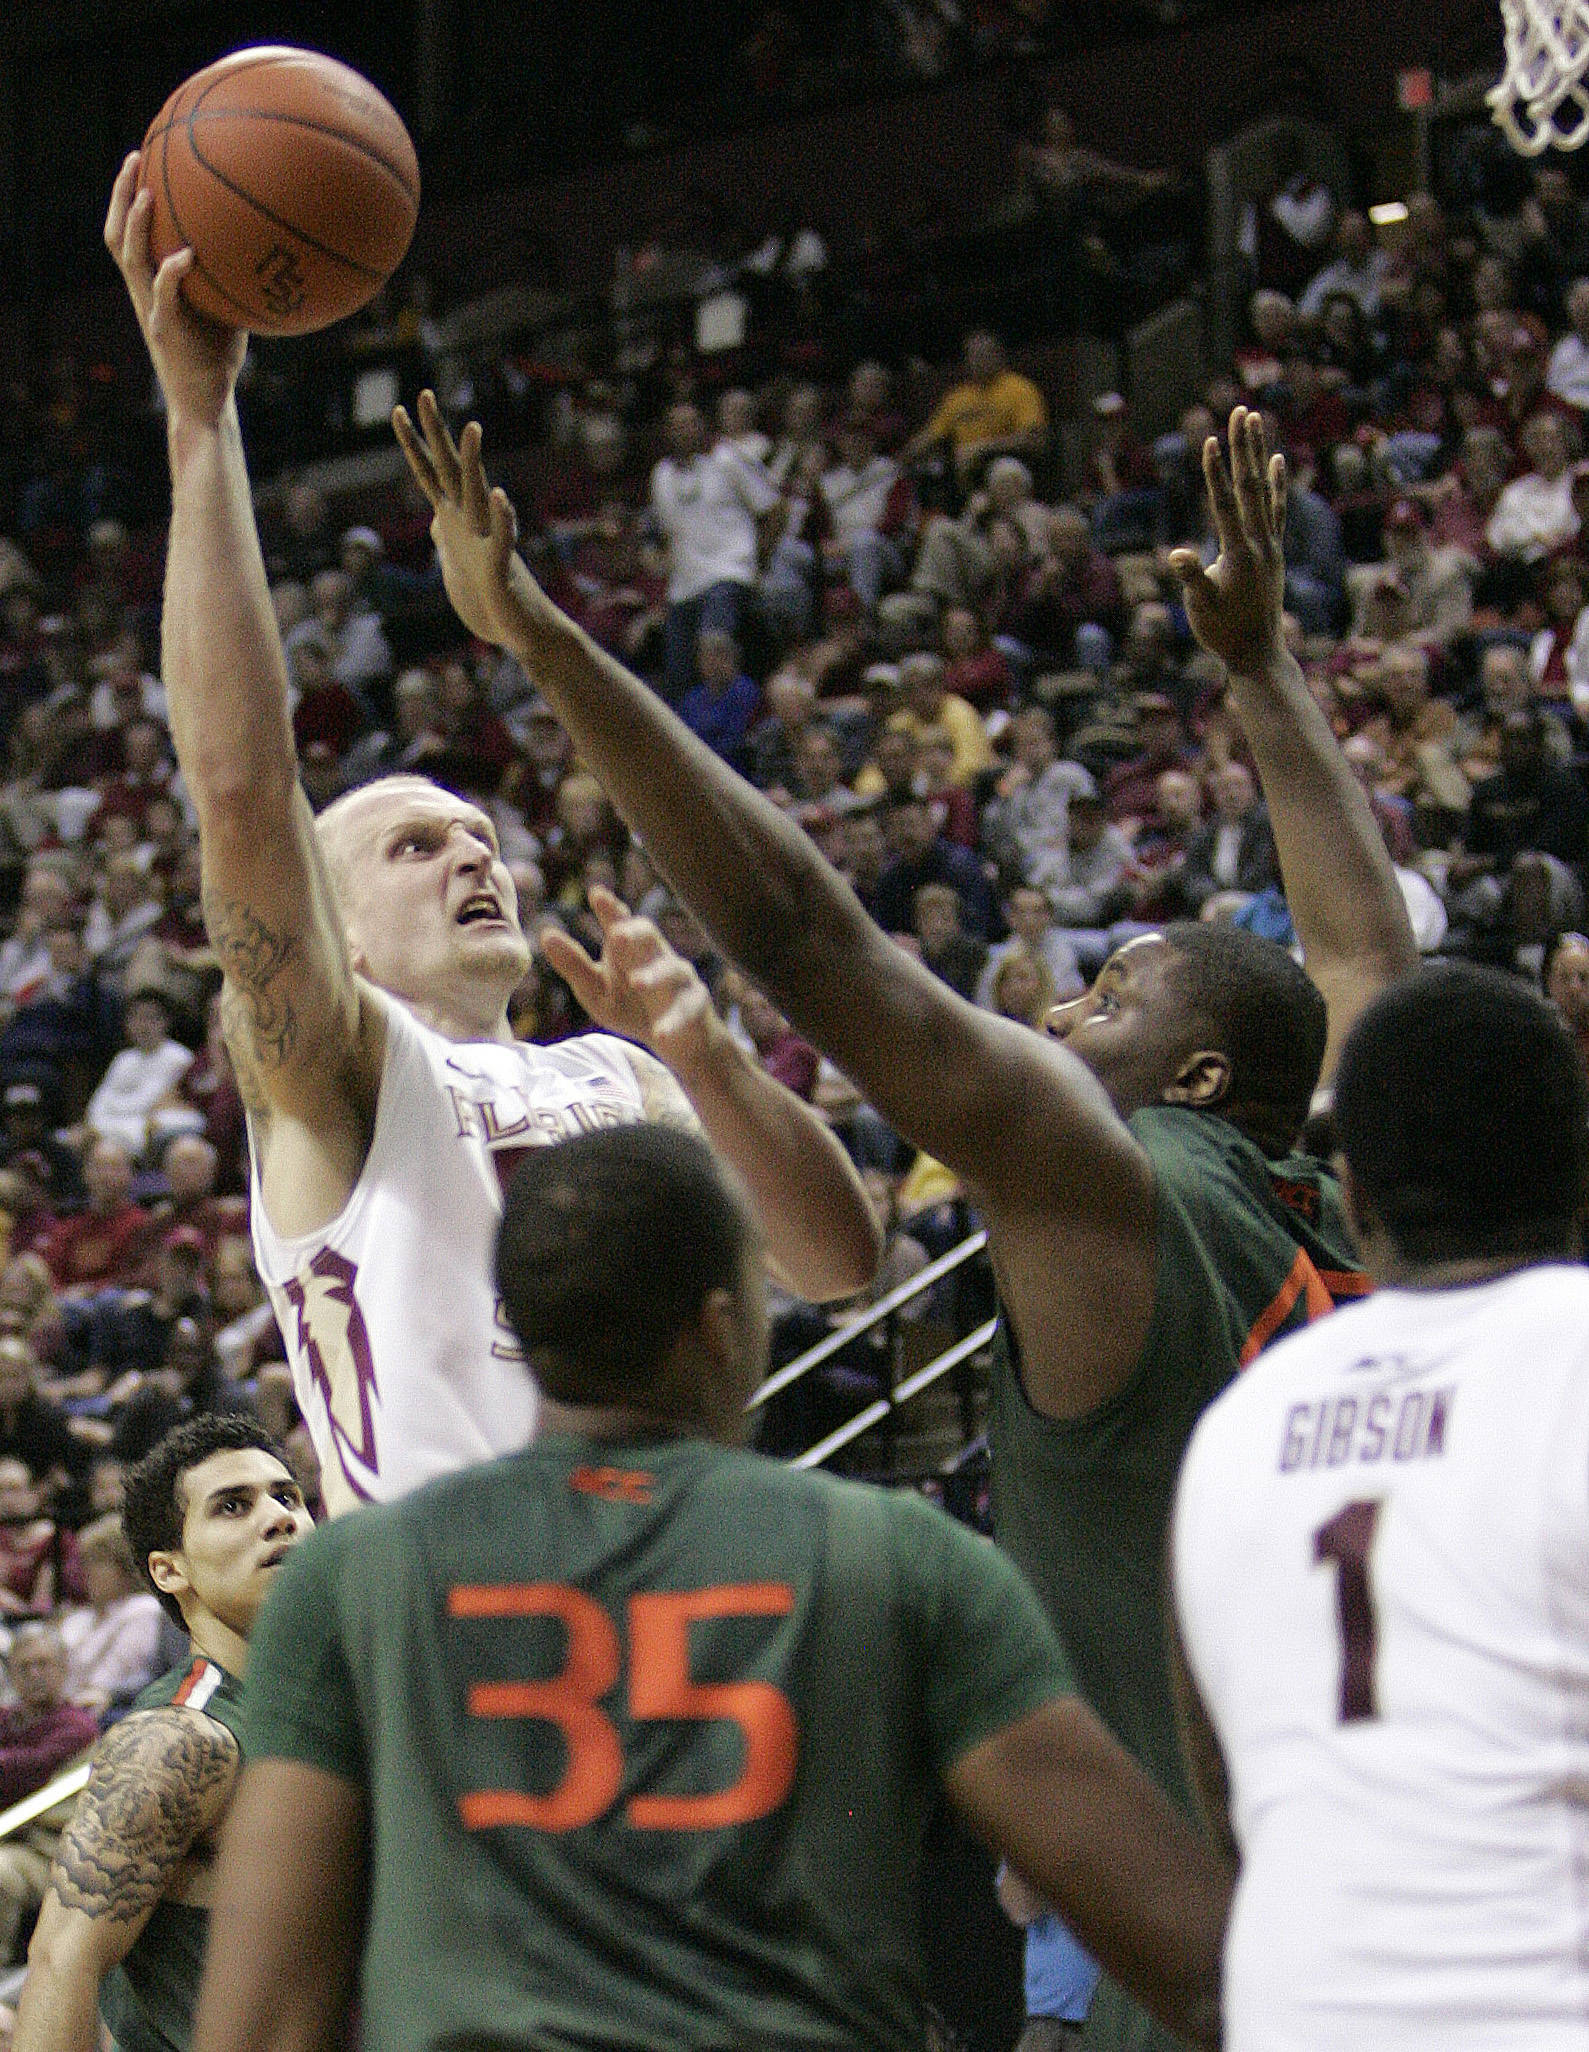 Florida State's Jon Kreft scores over the defense of Miami's Reggie Johnson in the first half of an NCAA college basketball game on Saturday, Feb. 11, 2012 in Tallahassee, Fla.(AP Photo/Steve Cannon)